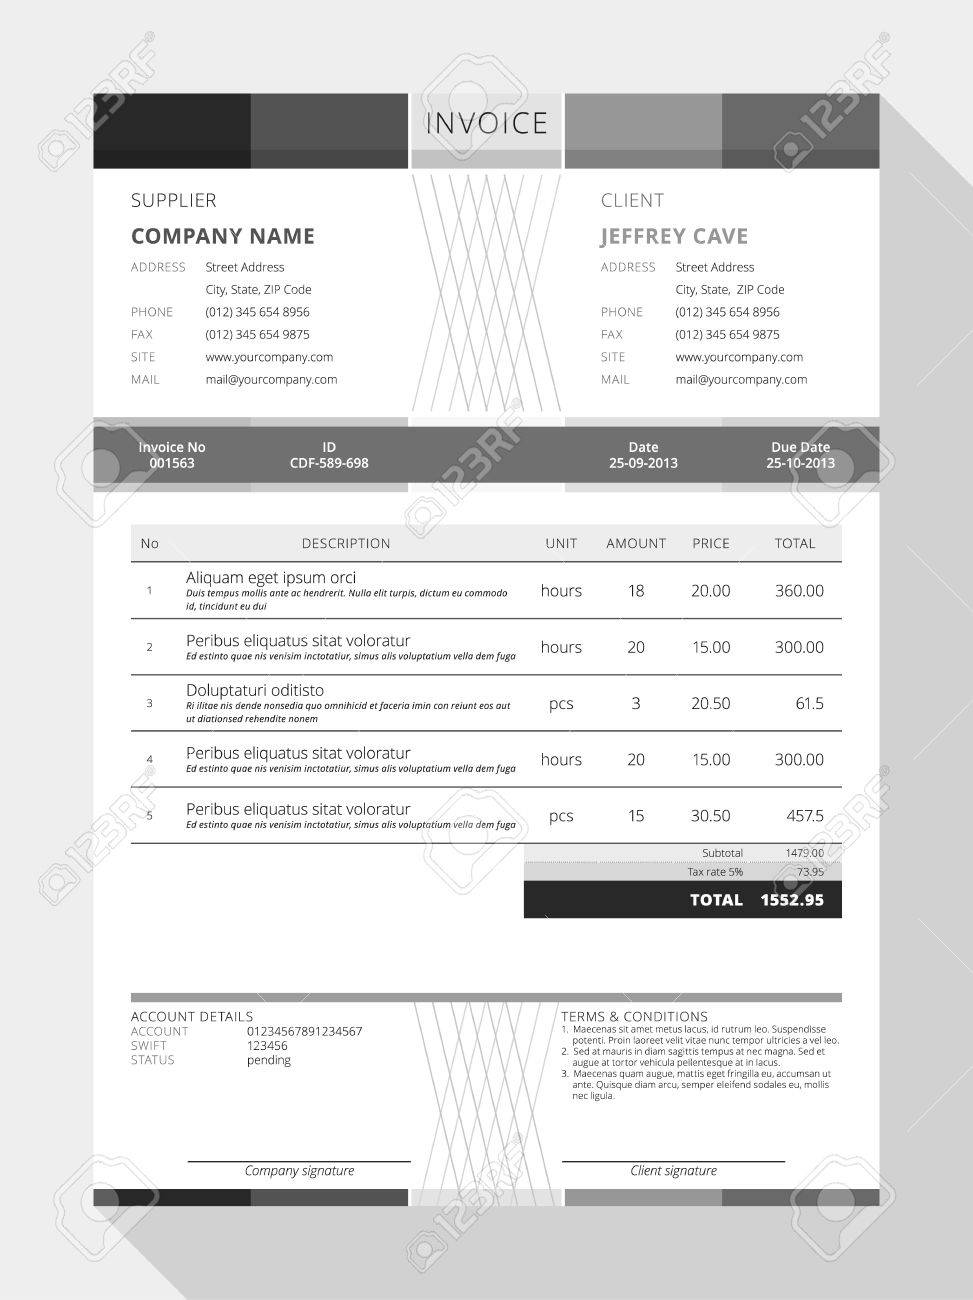 Carsforlessus  Sweet Design An Invoice  Professional Graphic Design Invoice  With Marvelous Vector Customizable Invoice Form Template Design Vector   Design An Invoice With Beautiful Make An Invoice Free Also Receipts In Addition Target Return Without Receipt And How To Turn Off Read Receipts As Well As Rent Receipt Template Additionally Target Returns Without Receipt From Happytomco With Carsforlessus  Marvelous Design An Invoice  Professional Graphic Design Invoice  With Beautiful Vector Customizable Invoice Form Template Design Vector   Design An Invoice And Sweet Make An Invoice Free Also Receipts In Addition Target Return Without Receipt From Happytomco